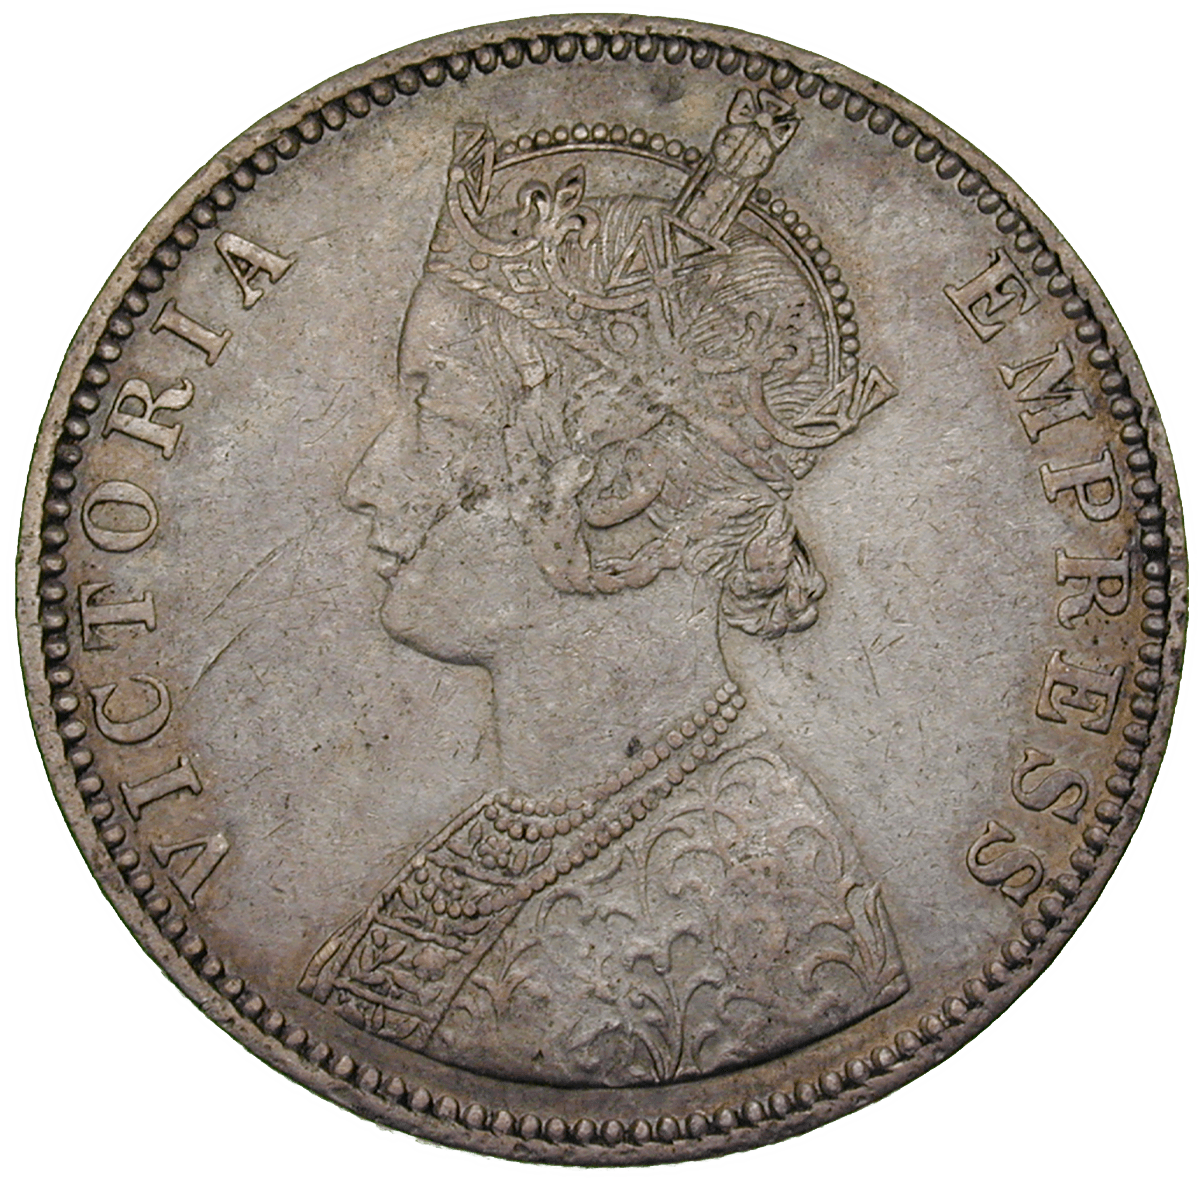 British Empire, Victoria for India, 1 Rupee 1901 (obverse)